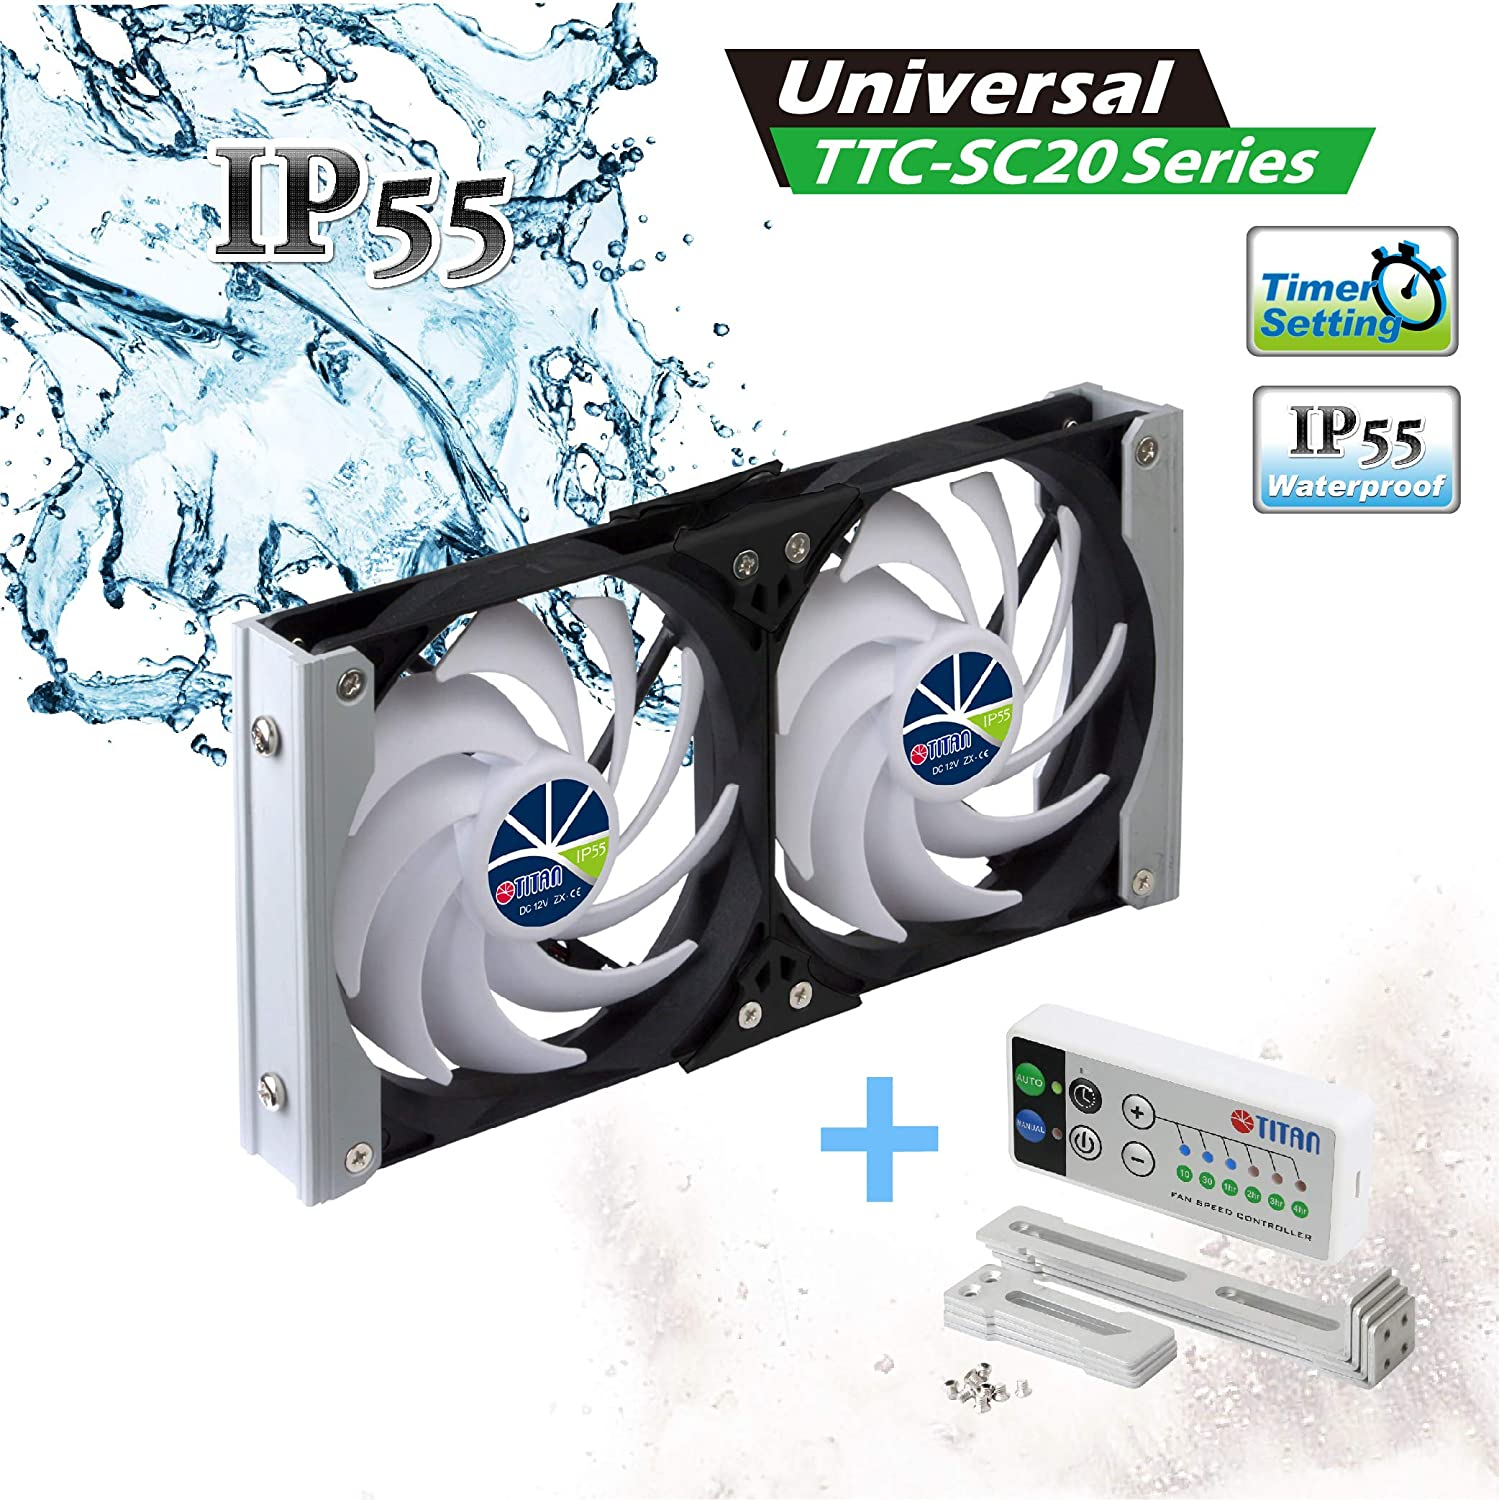 TITAN- 12V DC Double Rack Mount Cooling Fan for RV/Caravan/Bus Life  -TTC-SC20(B) (120mm)